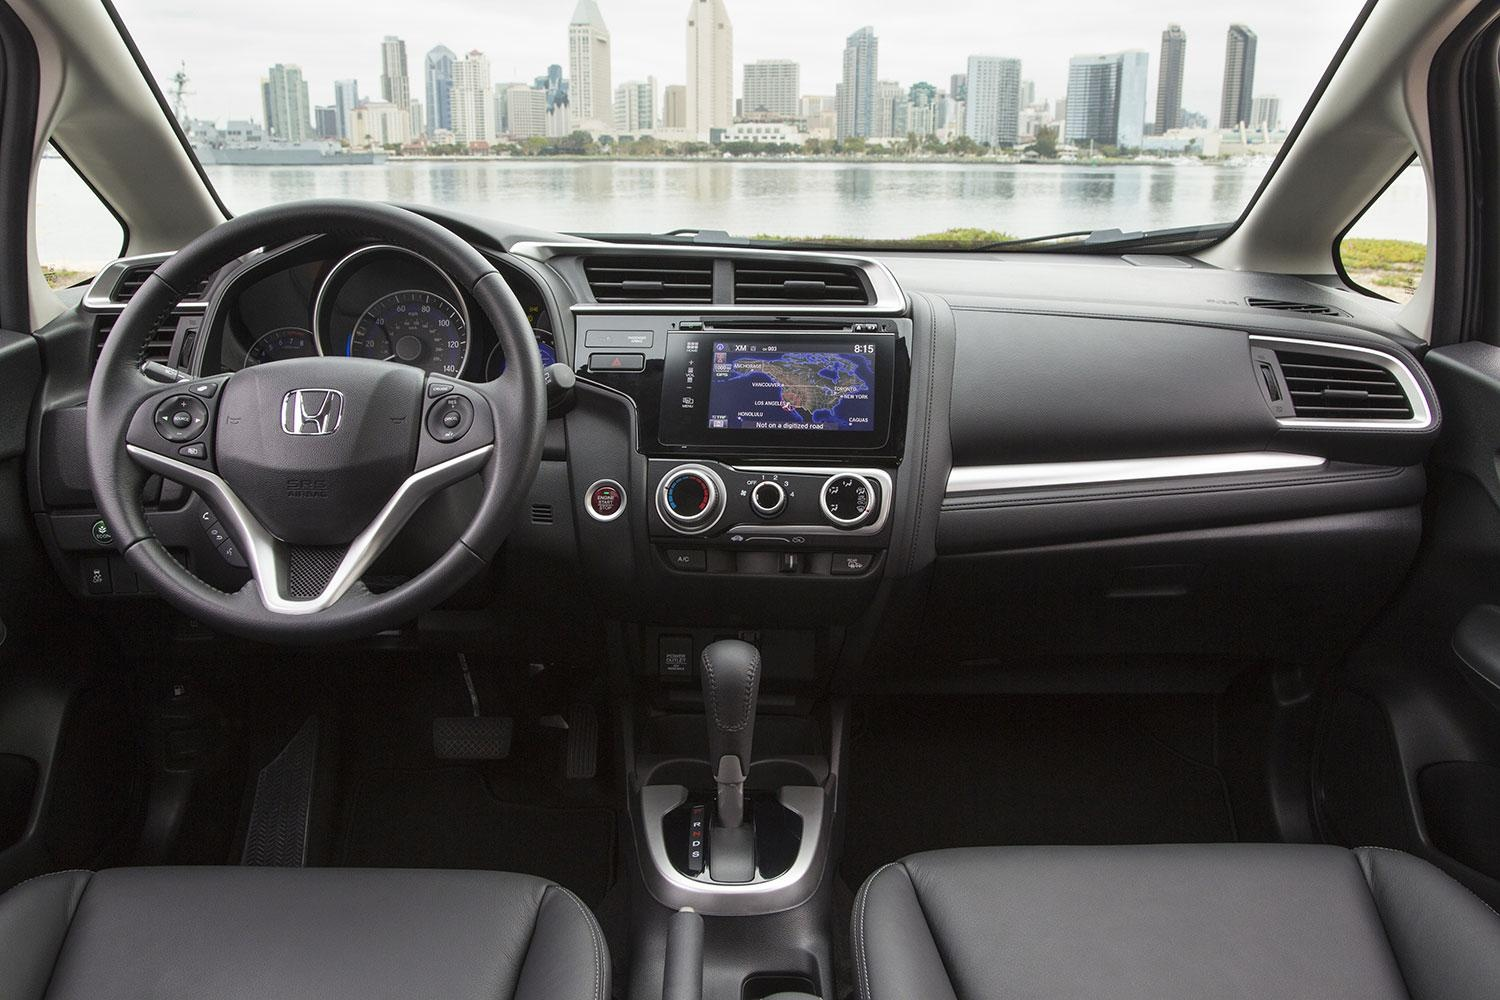 2015 Honda Fit Cockpit and Dashboard Interior